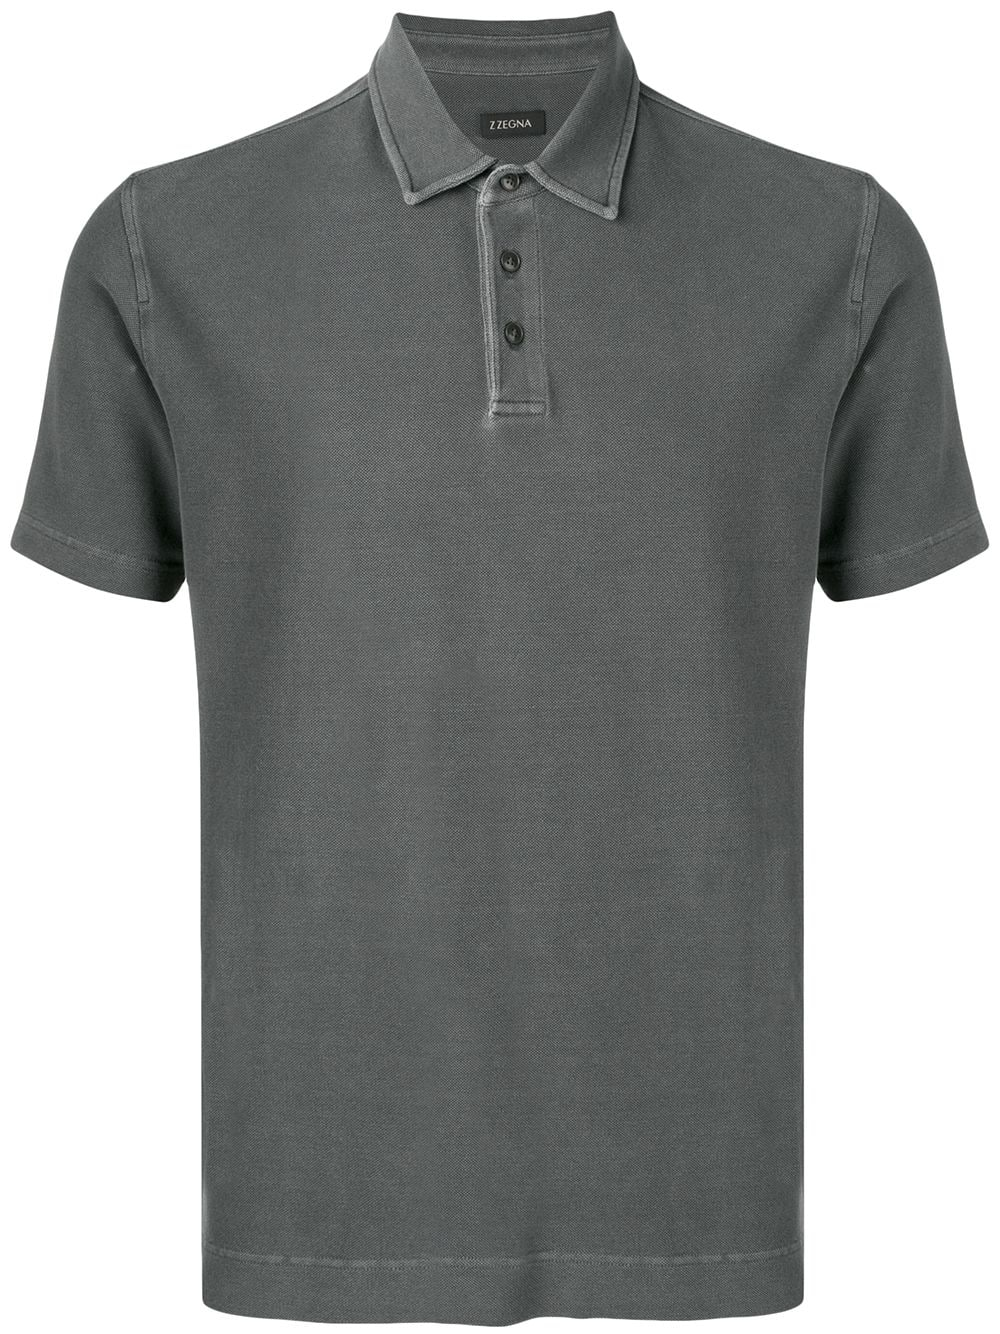 8cdfdcc91f Z Zegna classic polo shirt - Grey | Products in 2019 | Polo, Polo ...